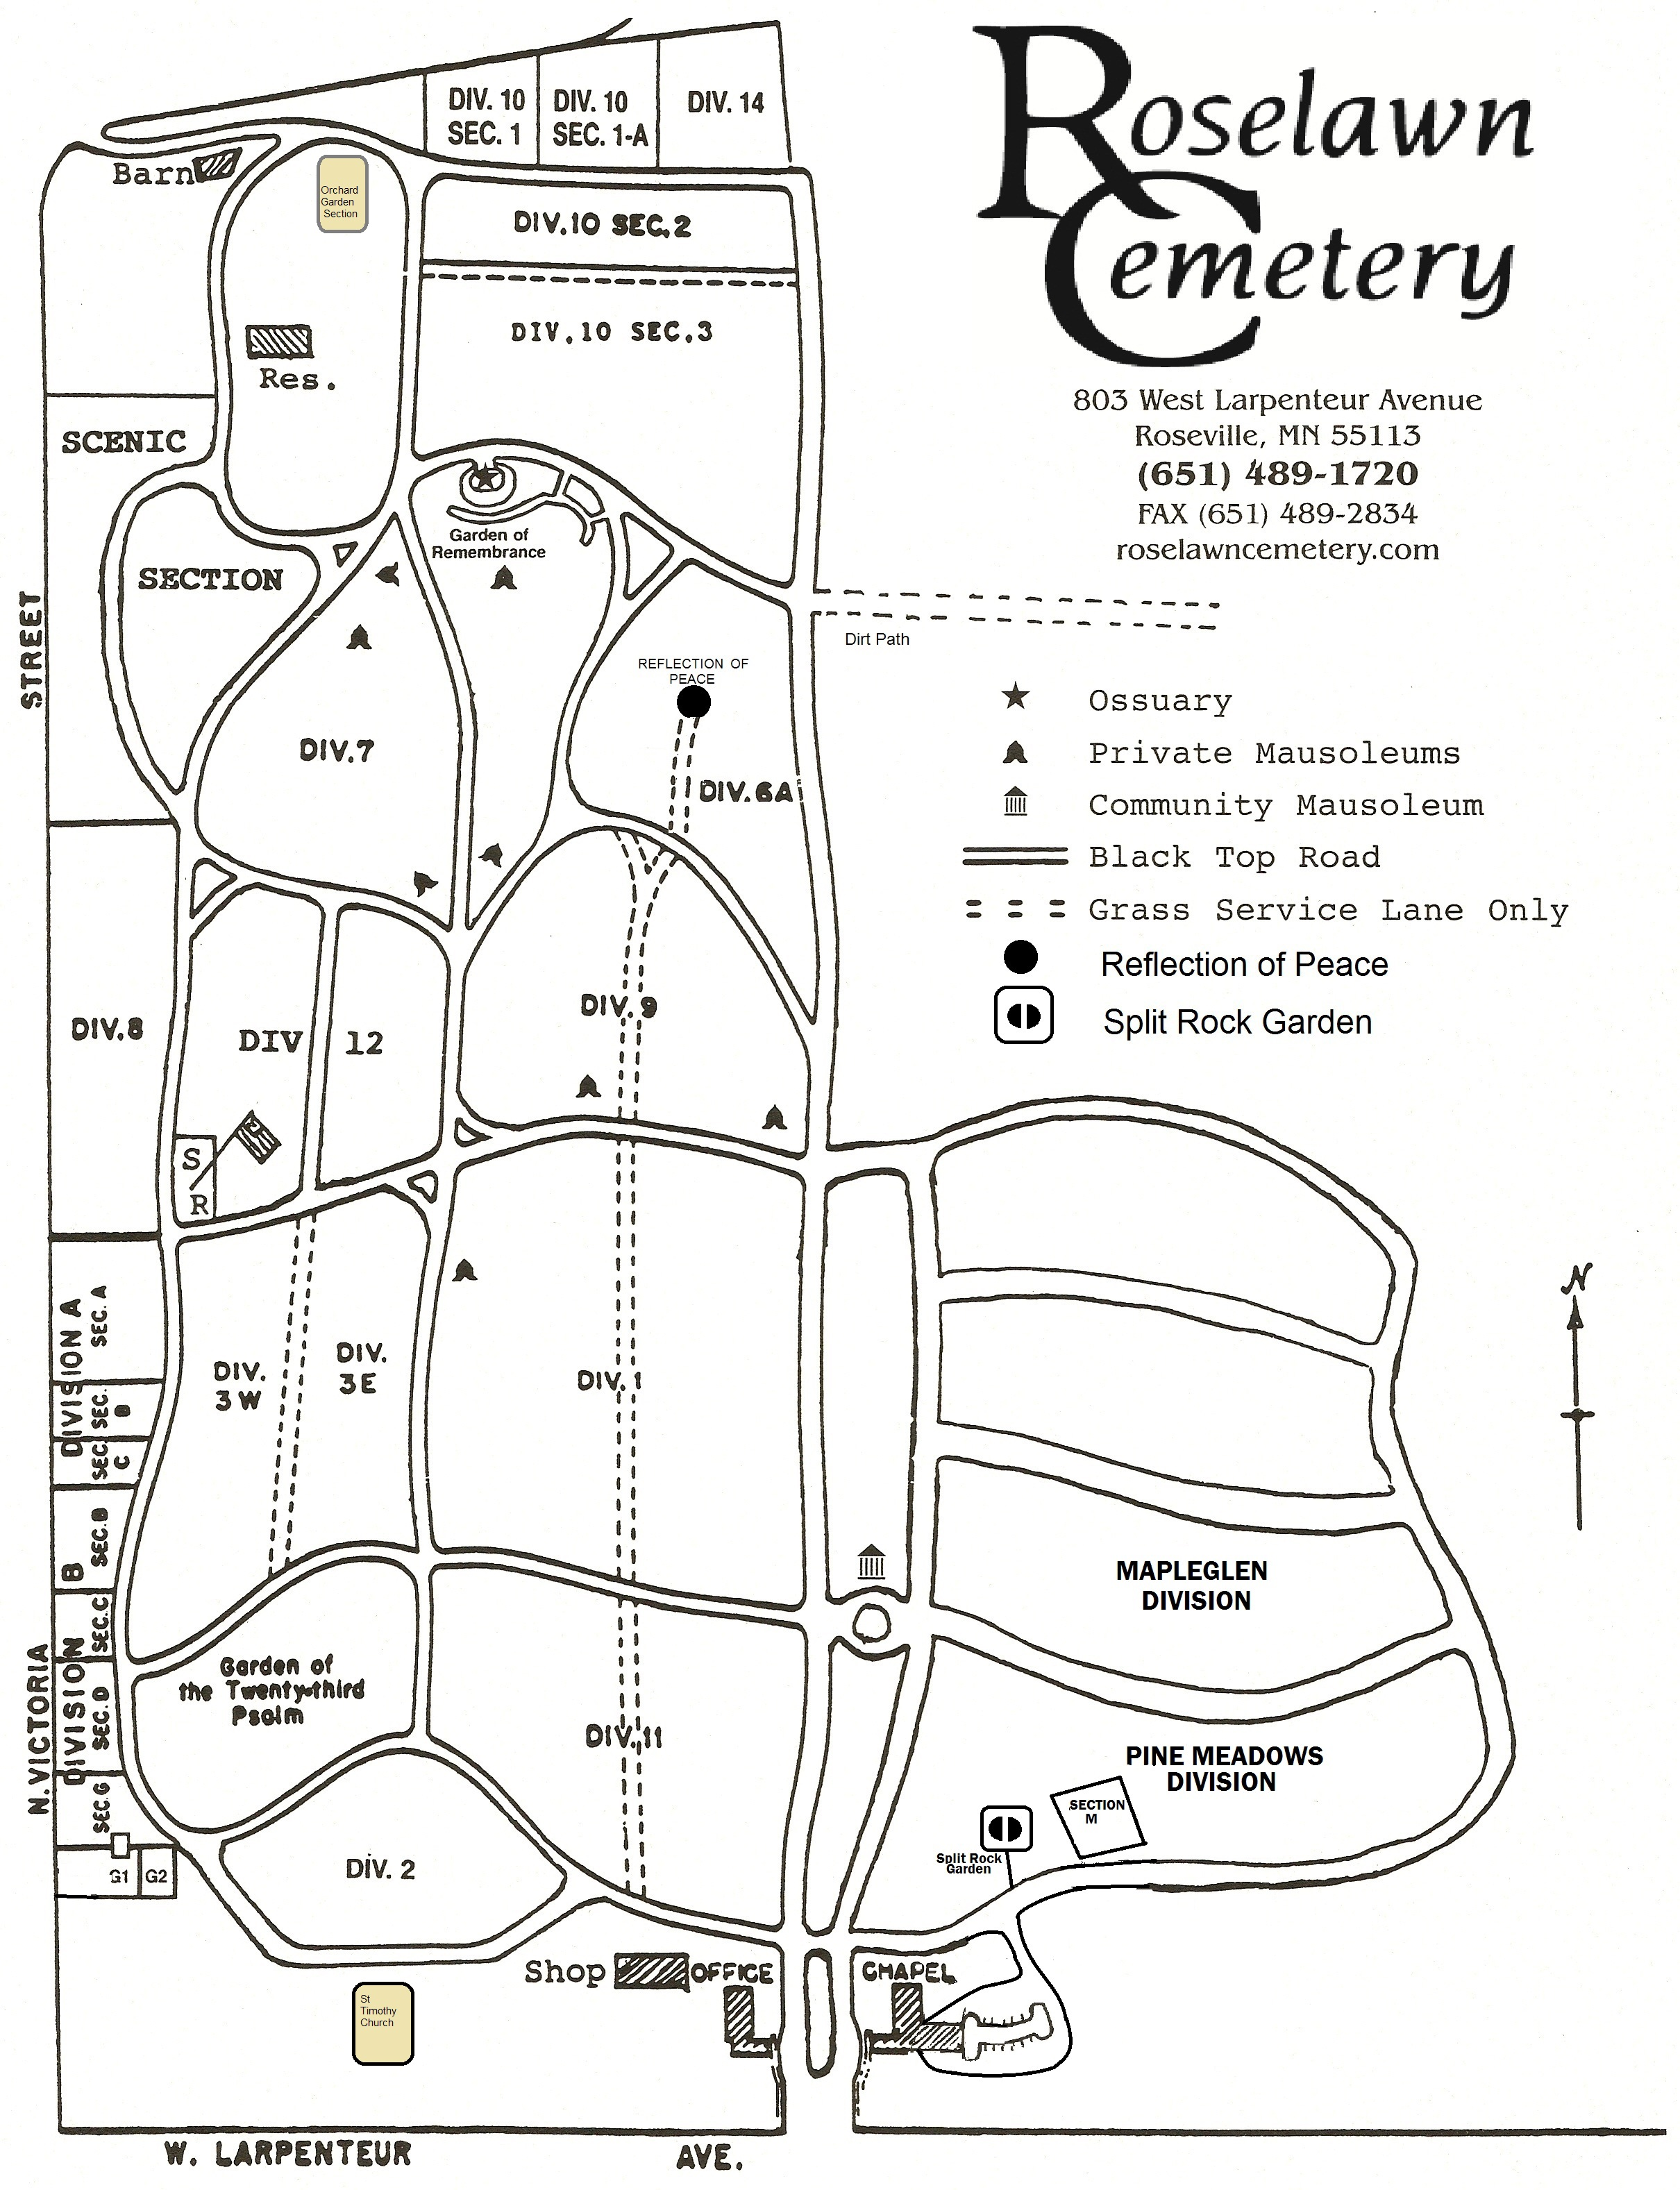 Burial Maps & Lot Ownership Locations | Roselawn Cemetery on